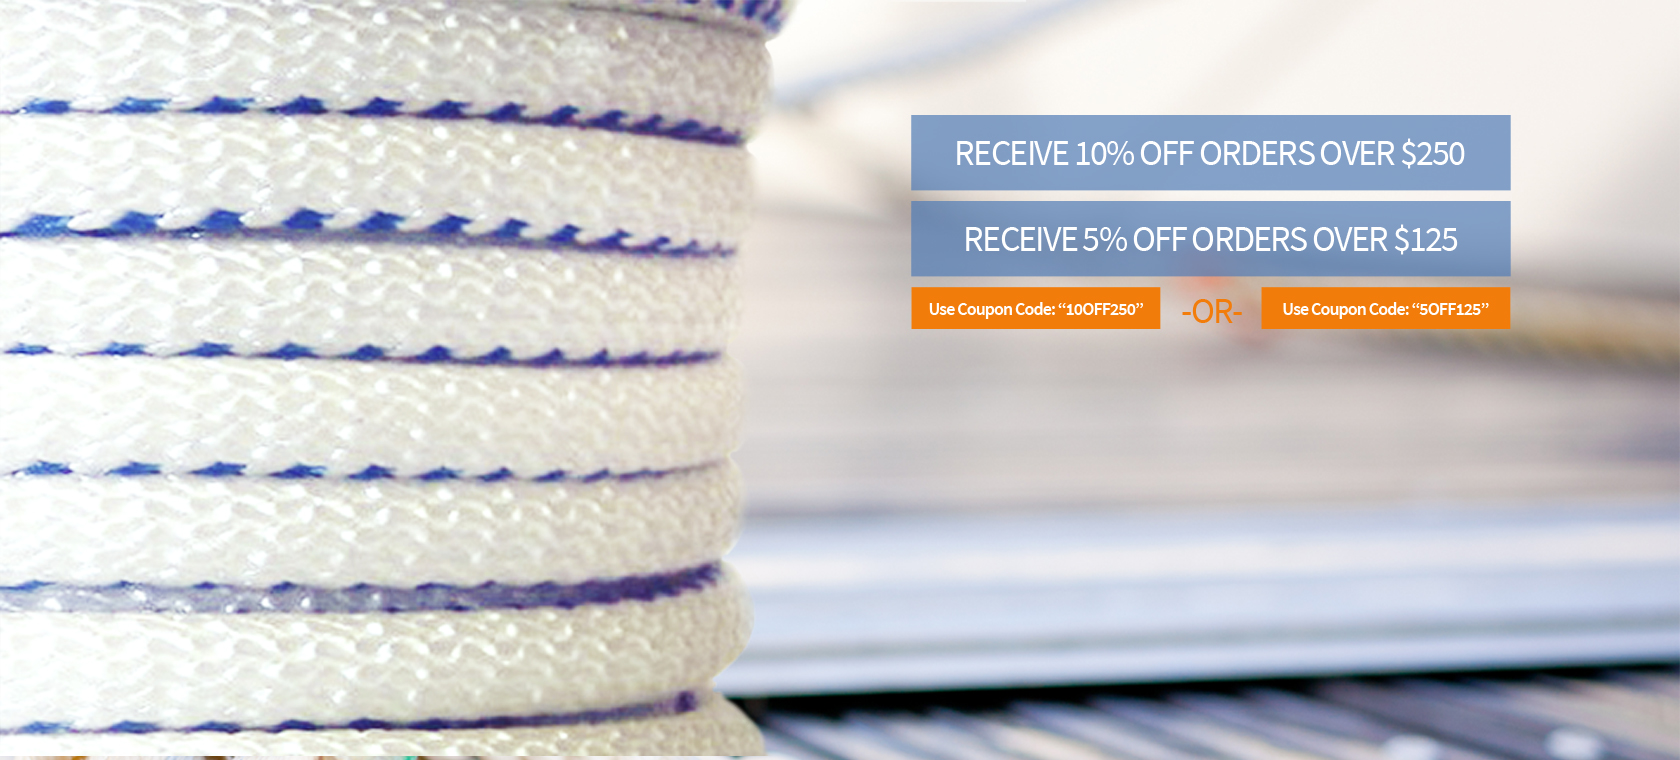 Receive 10% OFF orders over $250 or Receive 5% OFF orders over $125